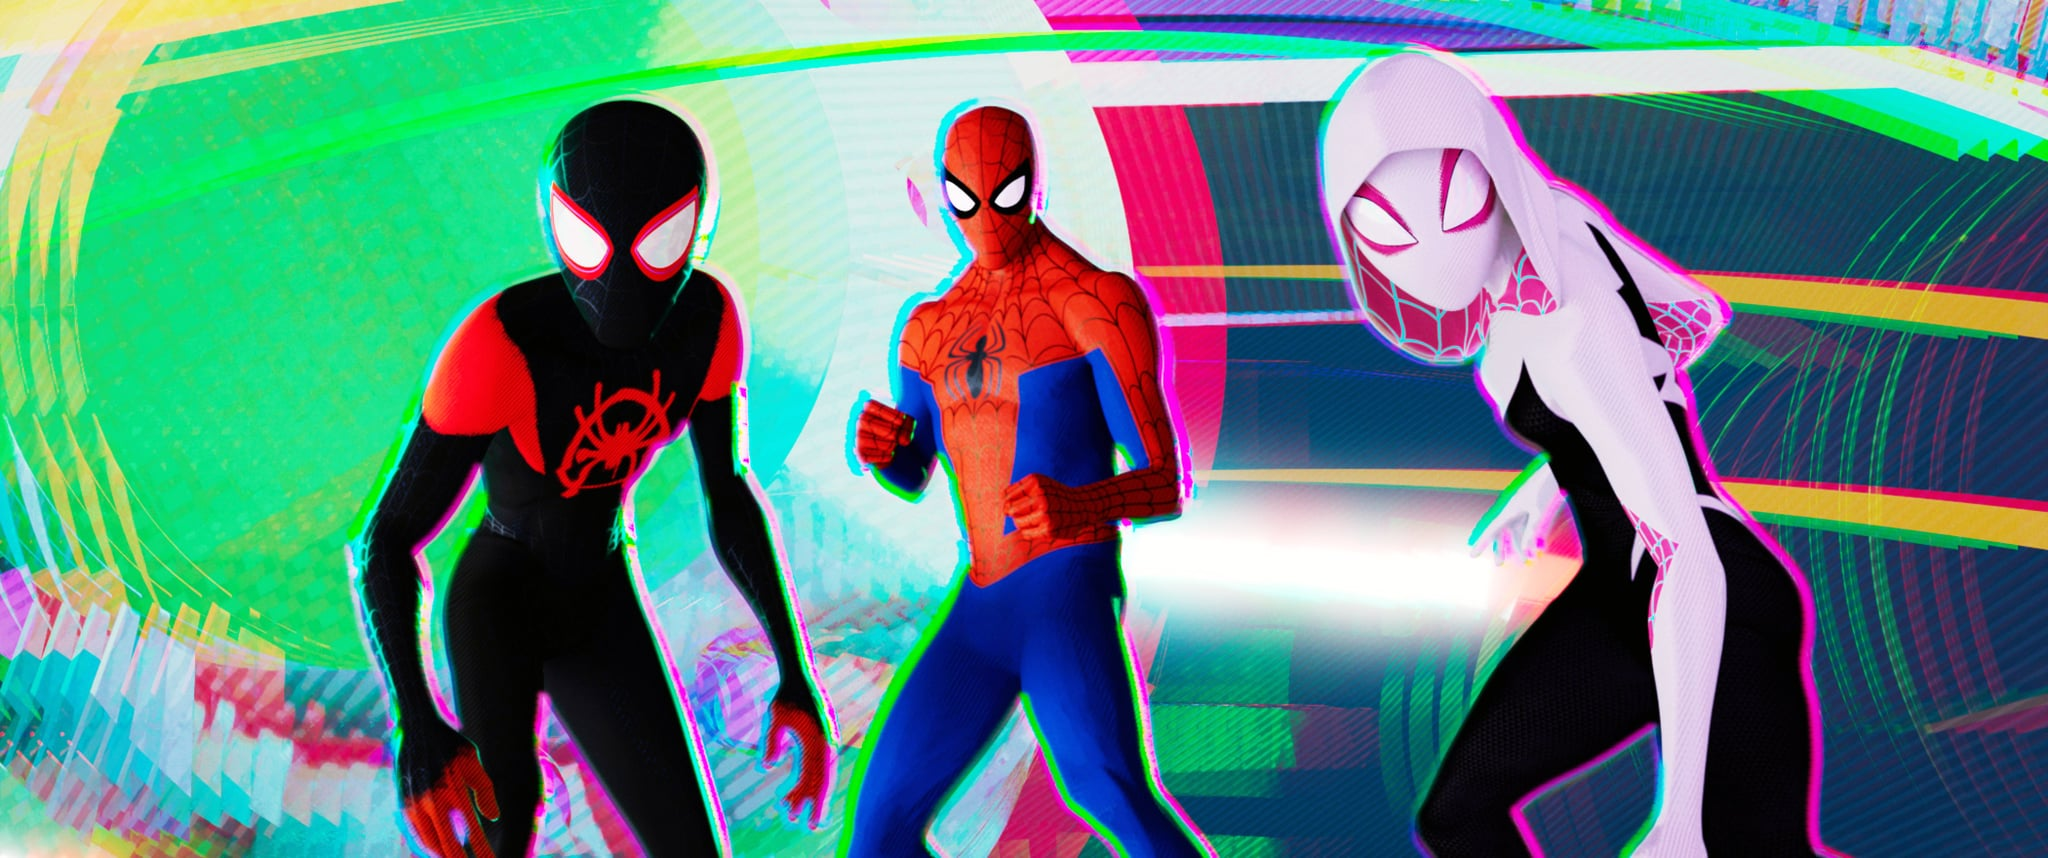 SPIDER-MAN: INTO THE SPIDER-VERSE, from left: Miles Morales (voice: Shameik Moore), Peter Parker (voice: Jake Johnson), Spider-Gwen (voice: Hailee Steinfeld), 2018.  Columbia Pictures / courtesy Everett Collection